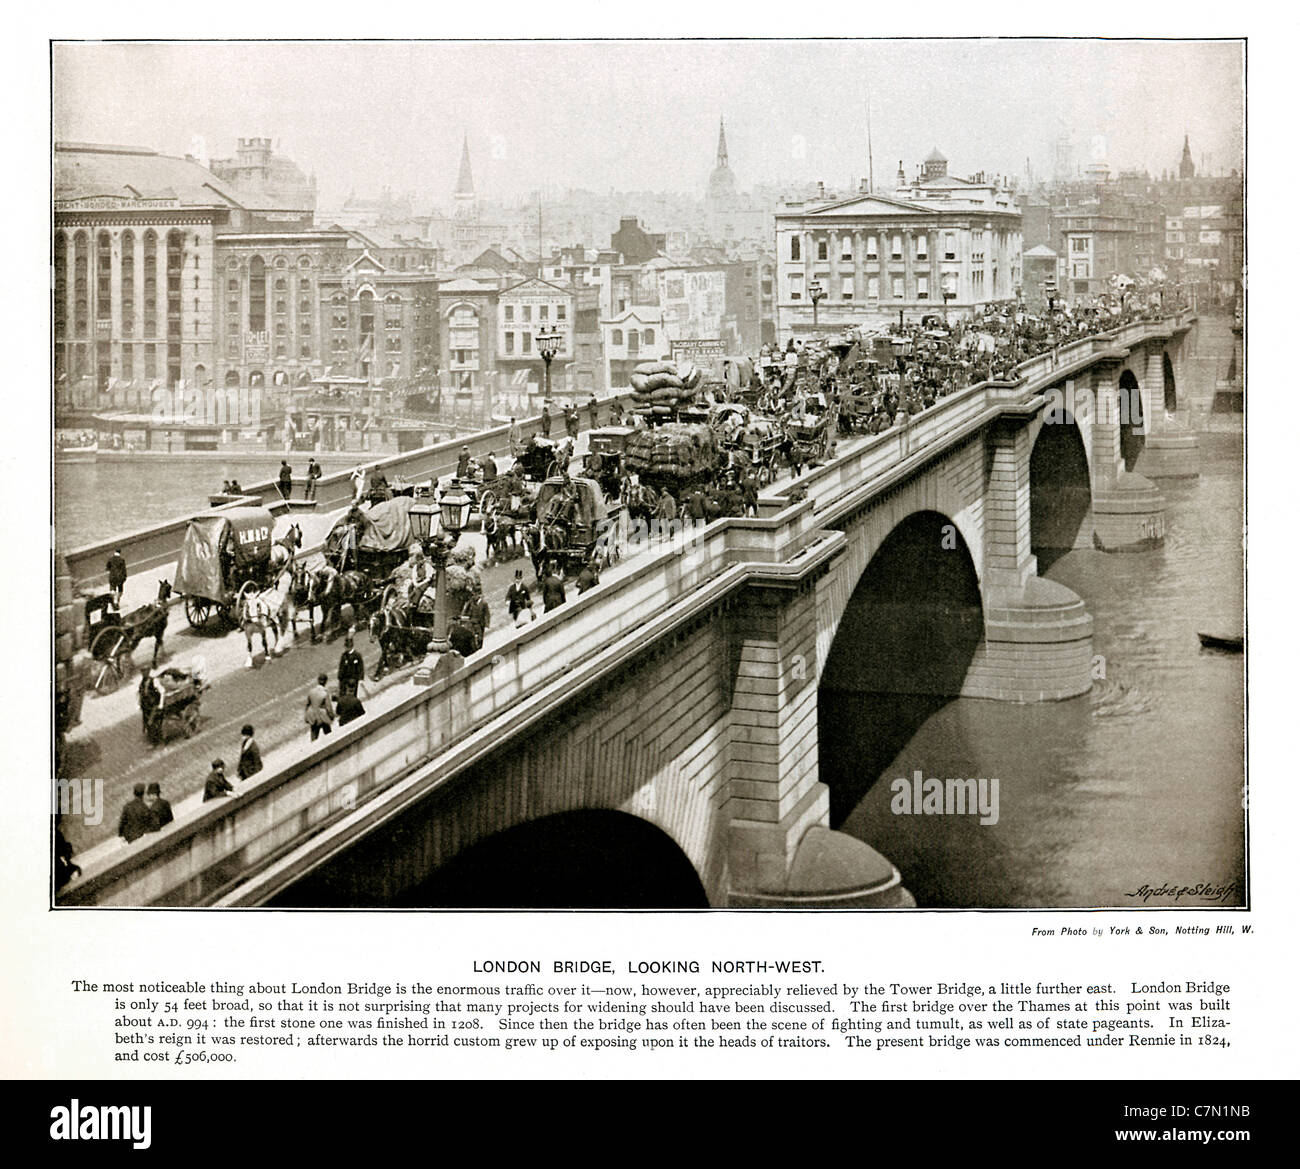 London Bridge, Looking North-West, 1897 Victorian photograph of the stream of traffic crossing over the River Thames - Stock Image